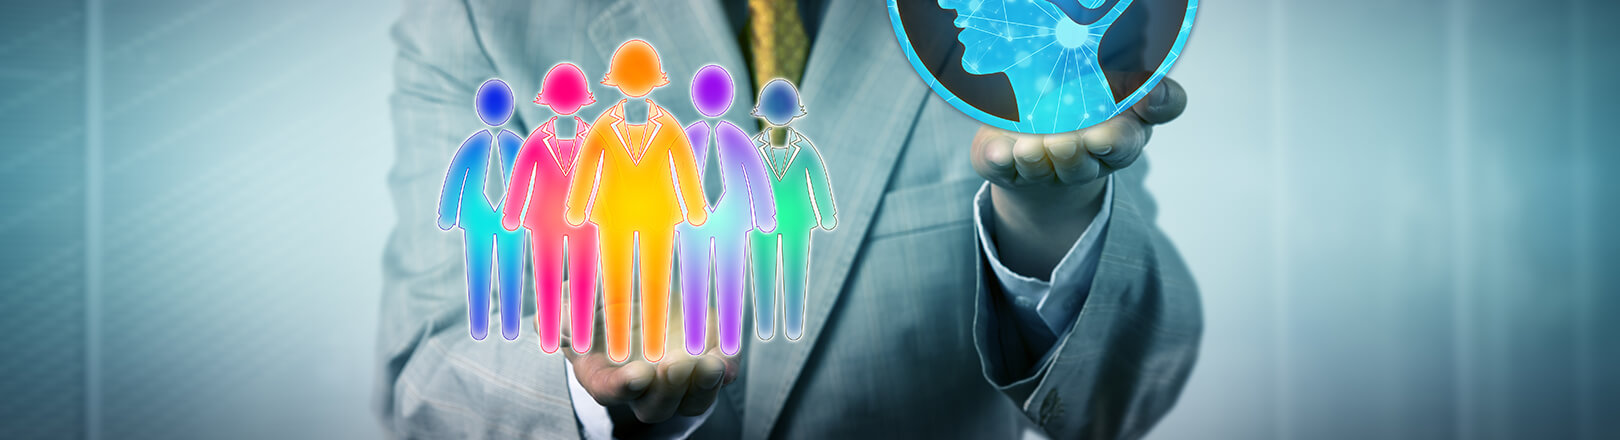 inclusion and diversity within the workplace